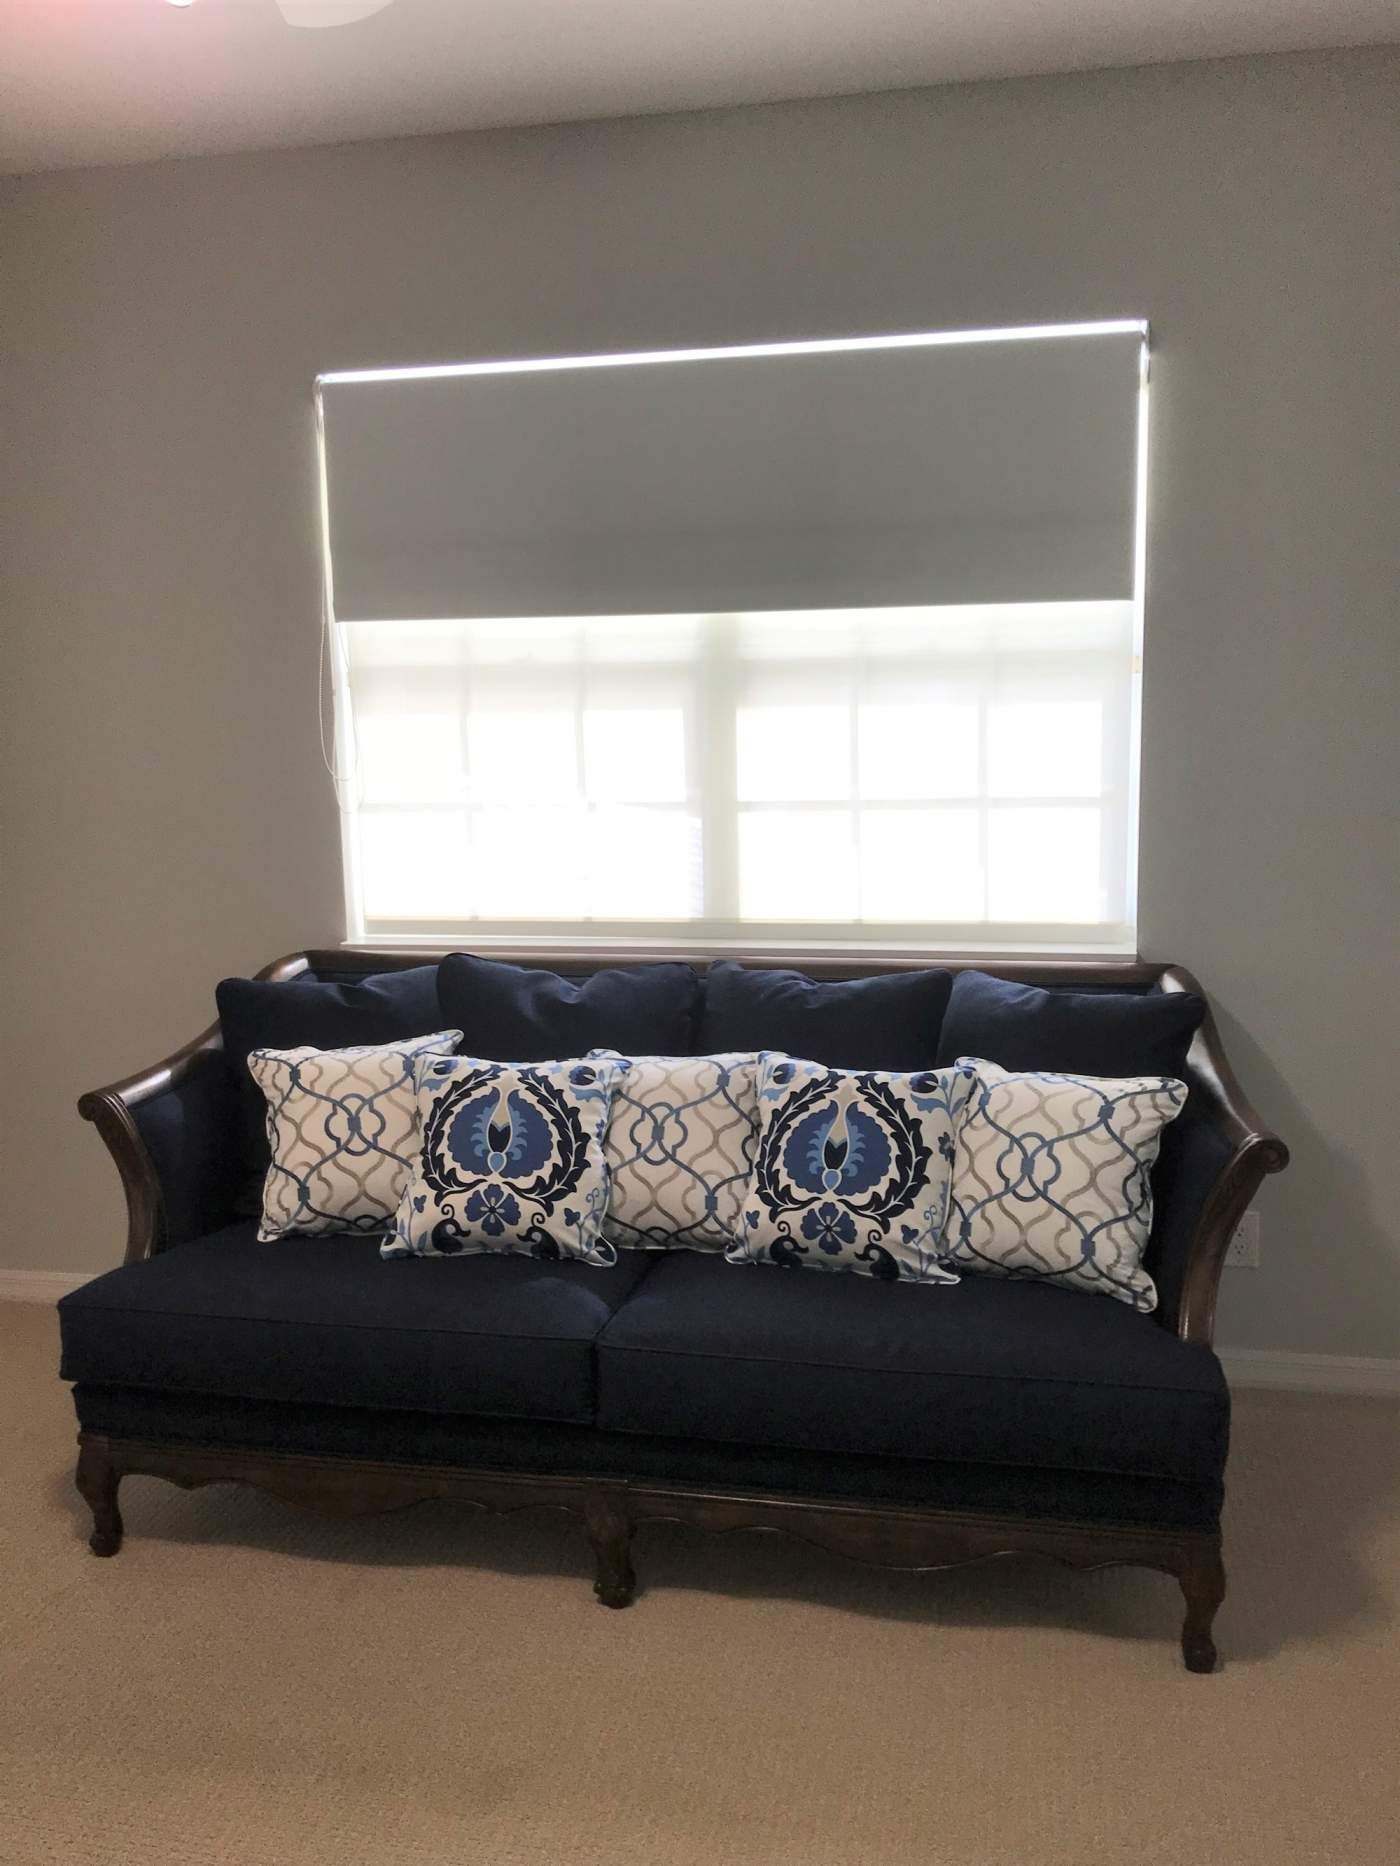 White Shade above Blue couch